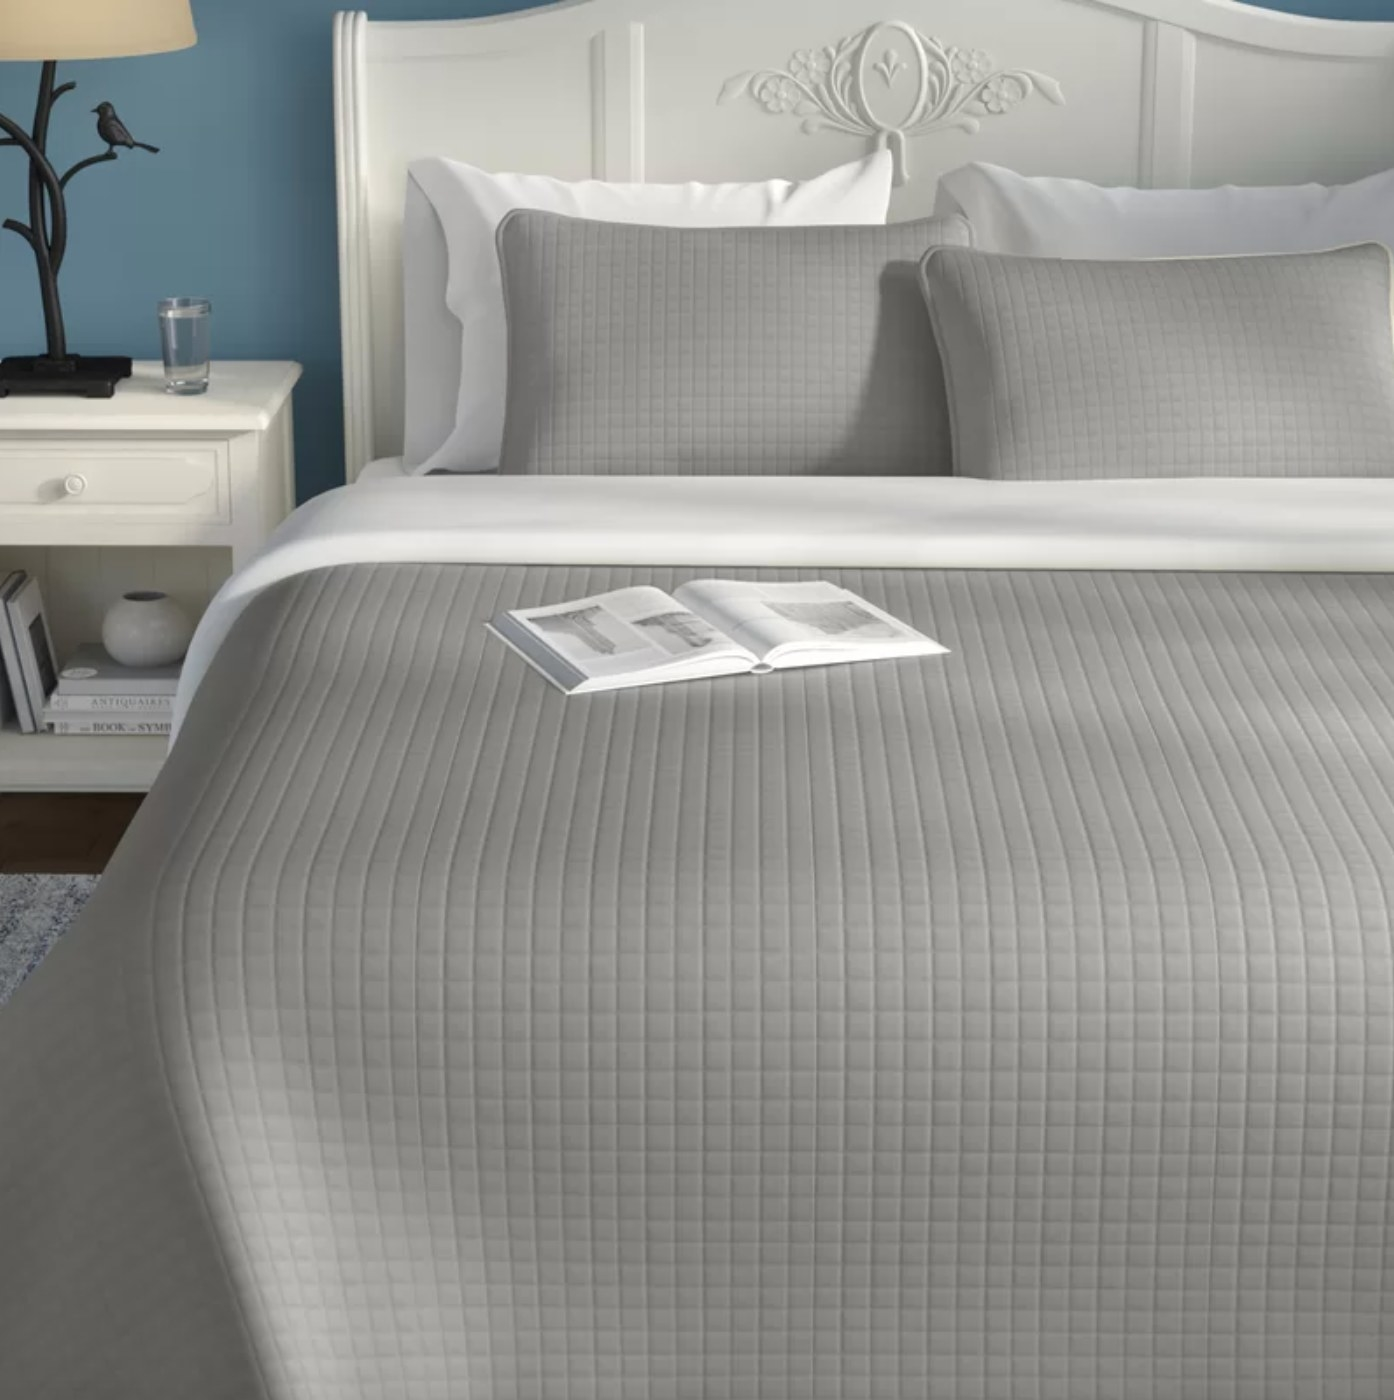 The two-piece quilt set in steel gray